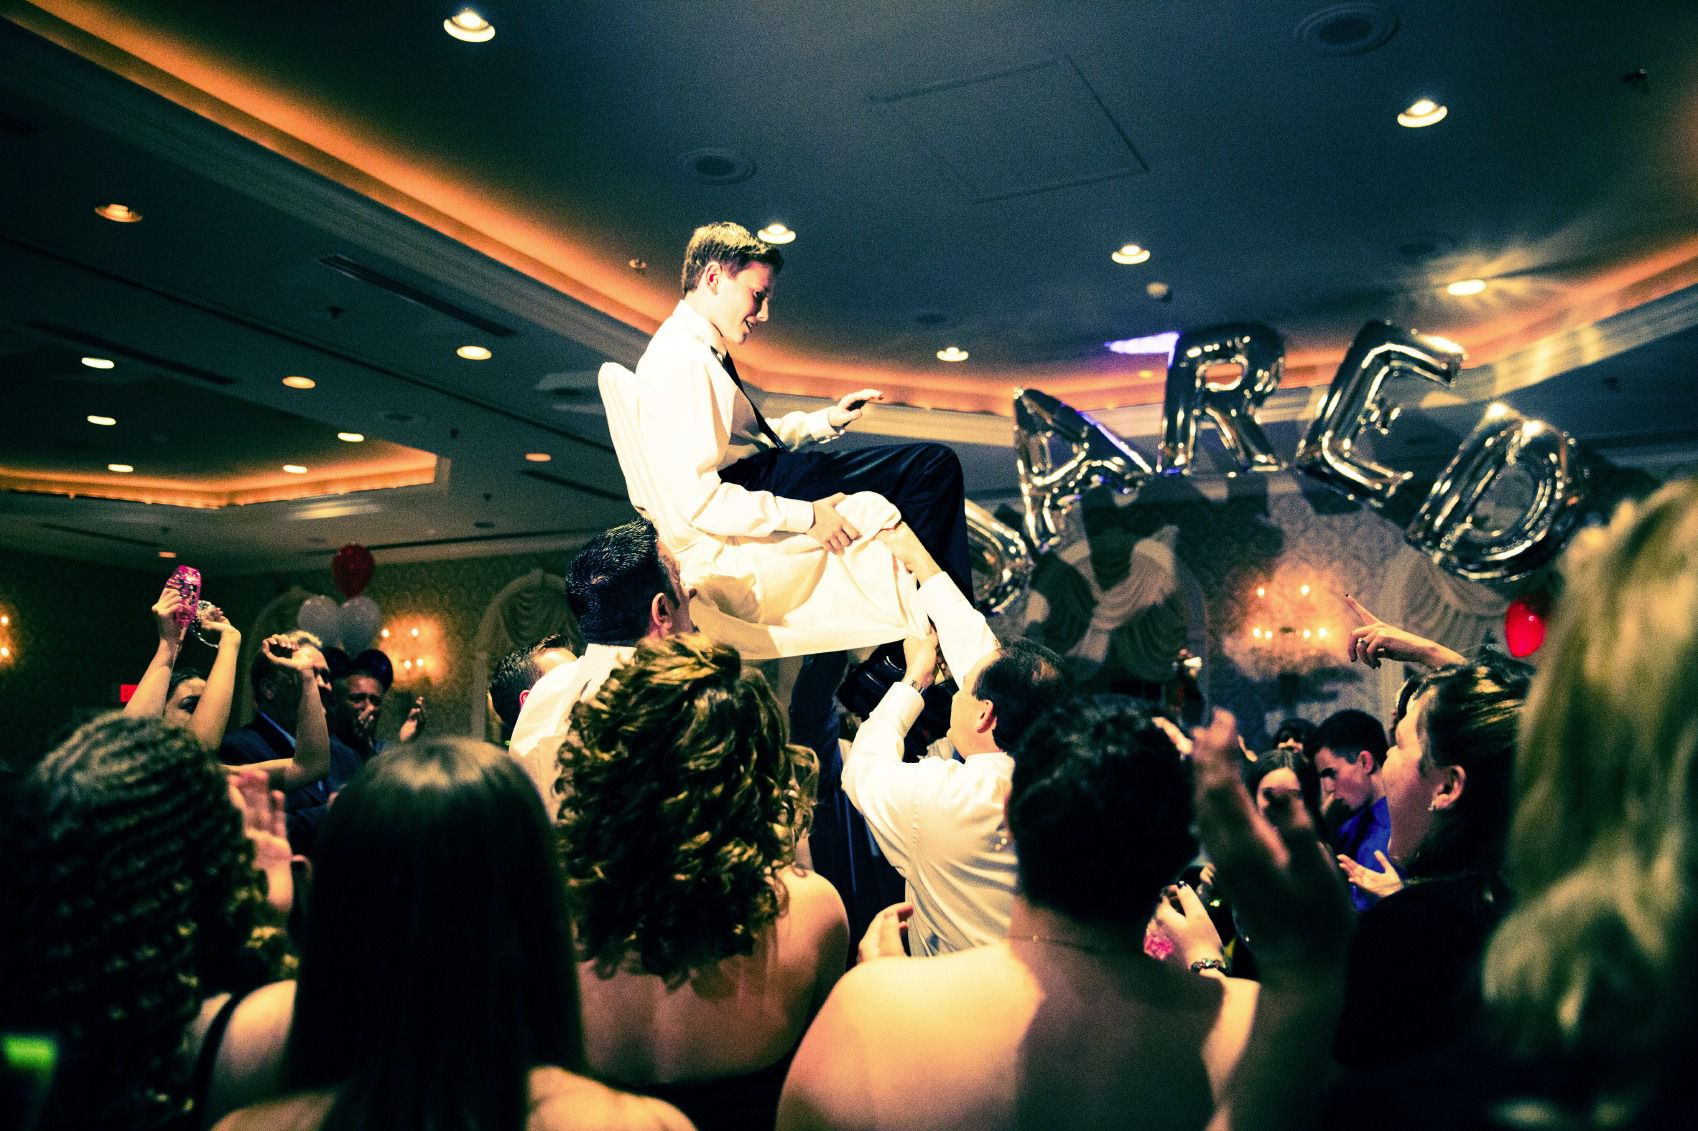 Why Does Your Bar Mitzvah DJ Cost So Much?